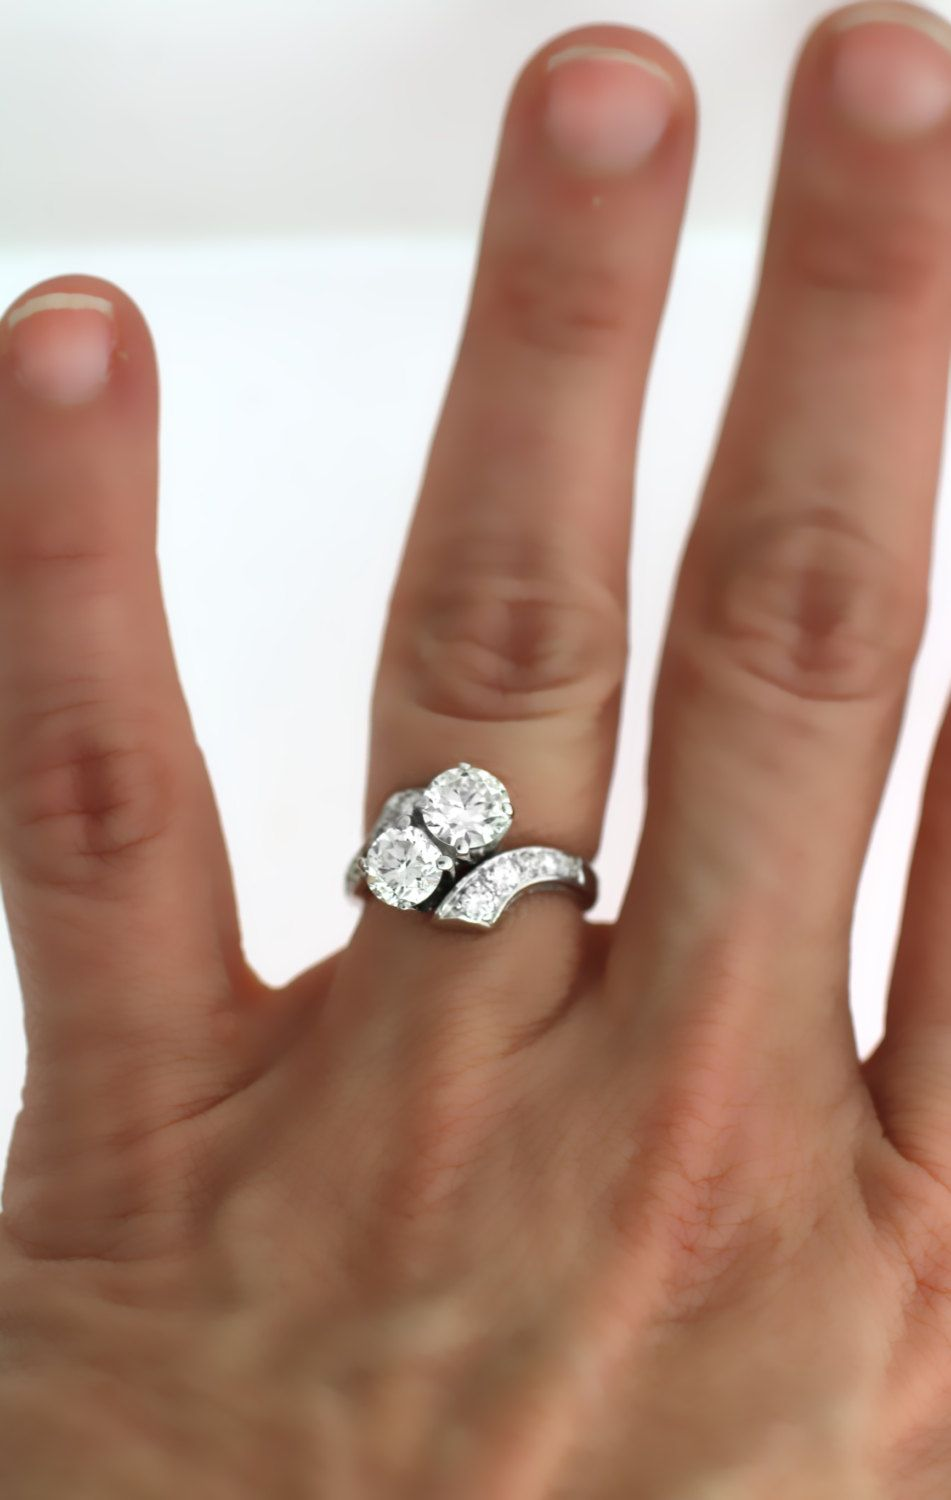 Vintage 1940s 1.96TCW Diamond Engagement Ring by WhitesVintage on Etsy